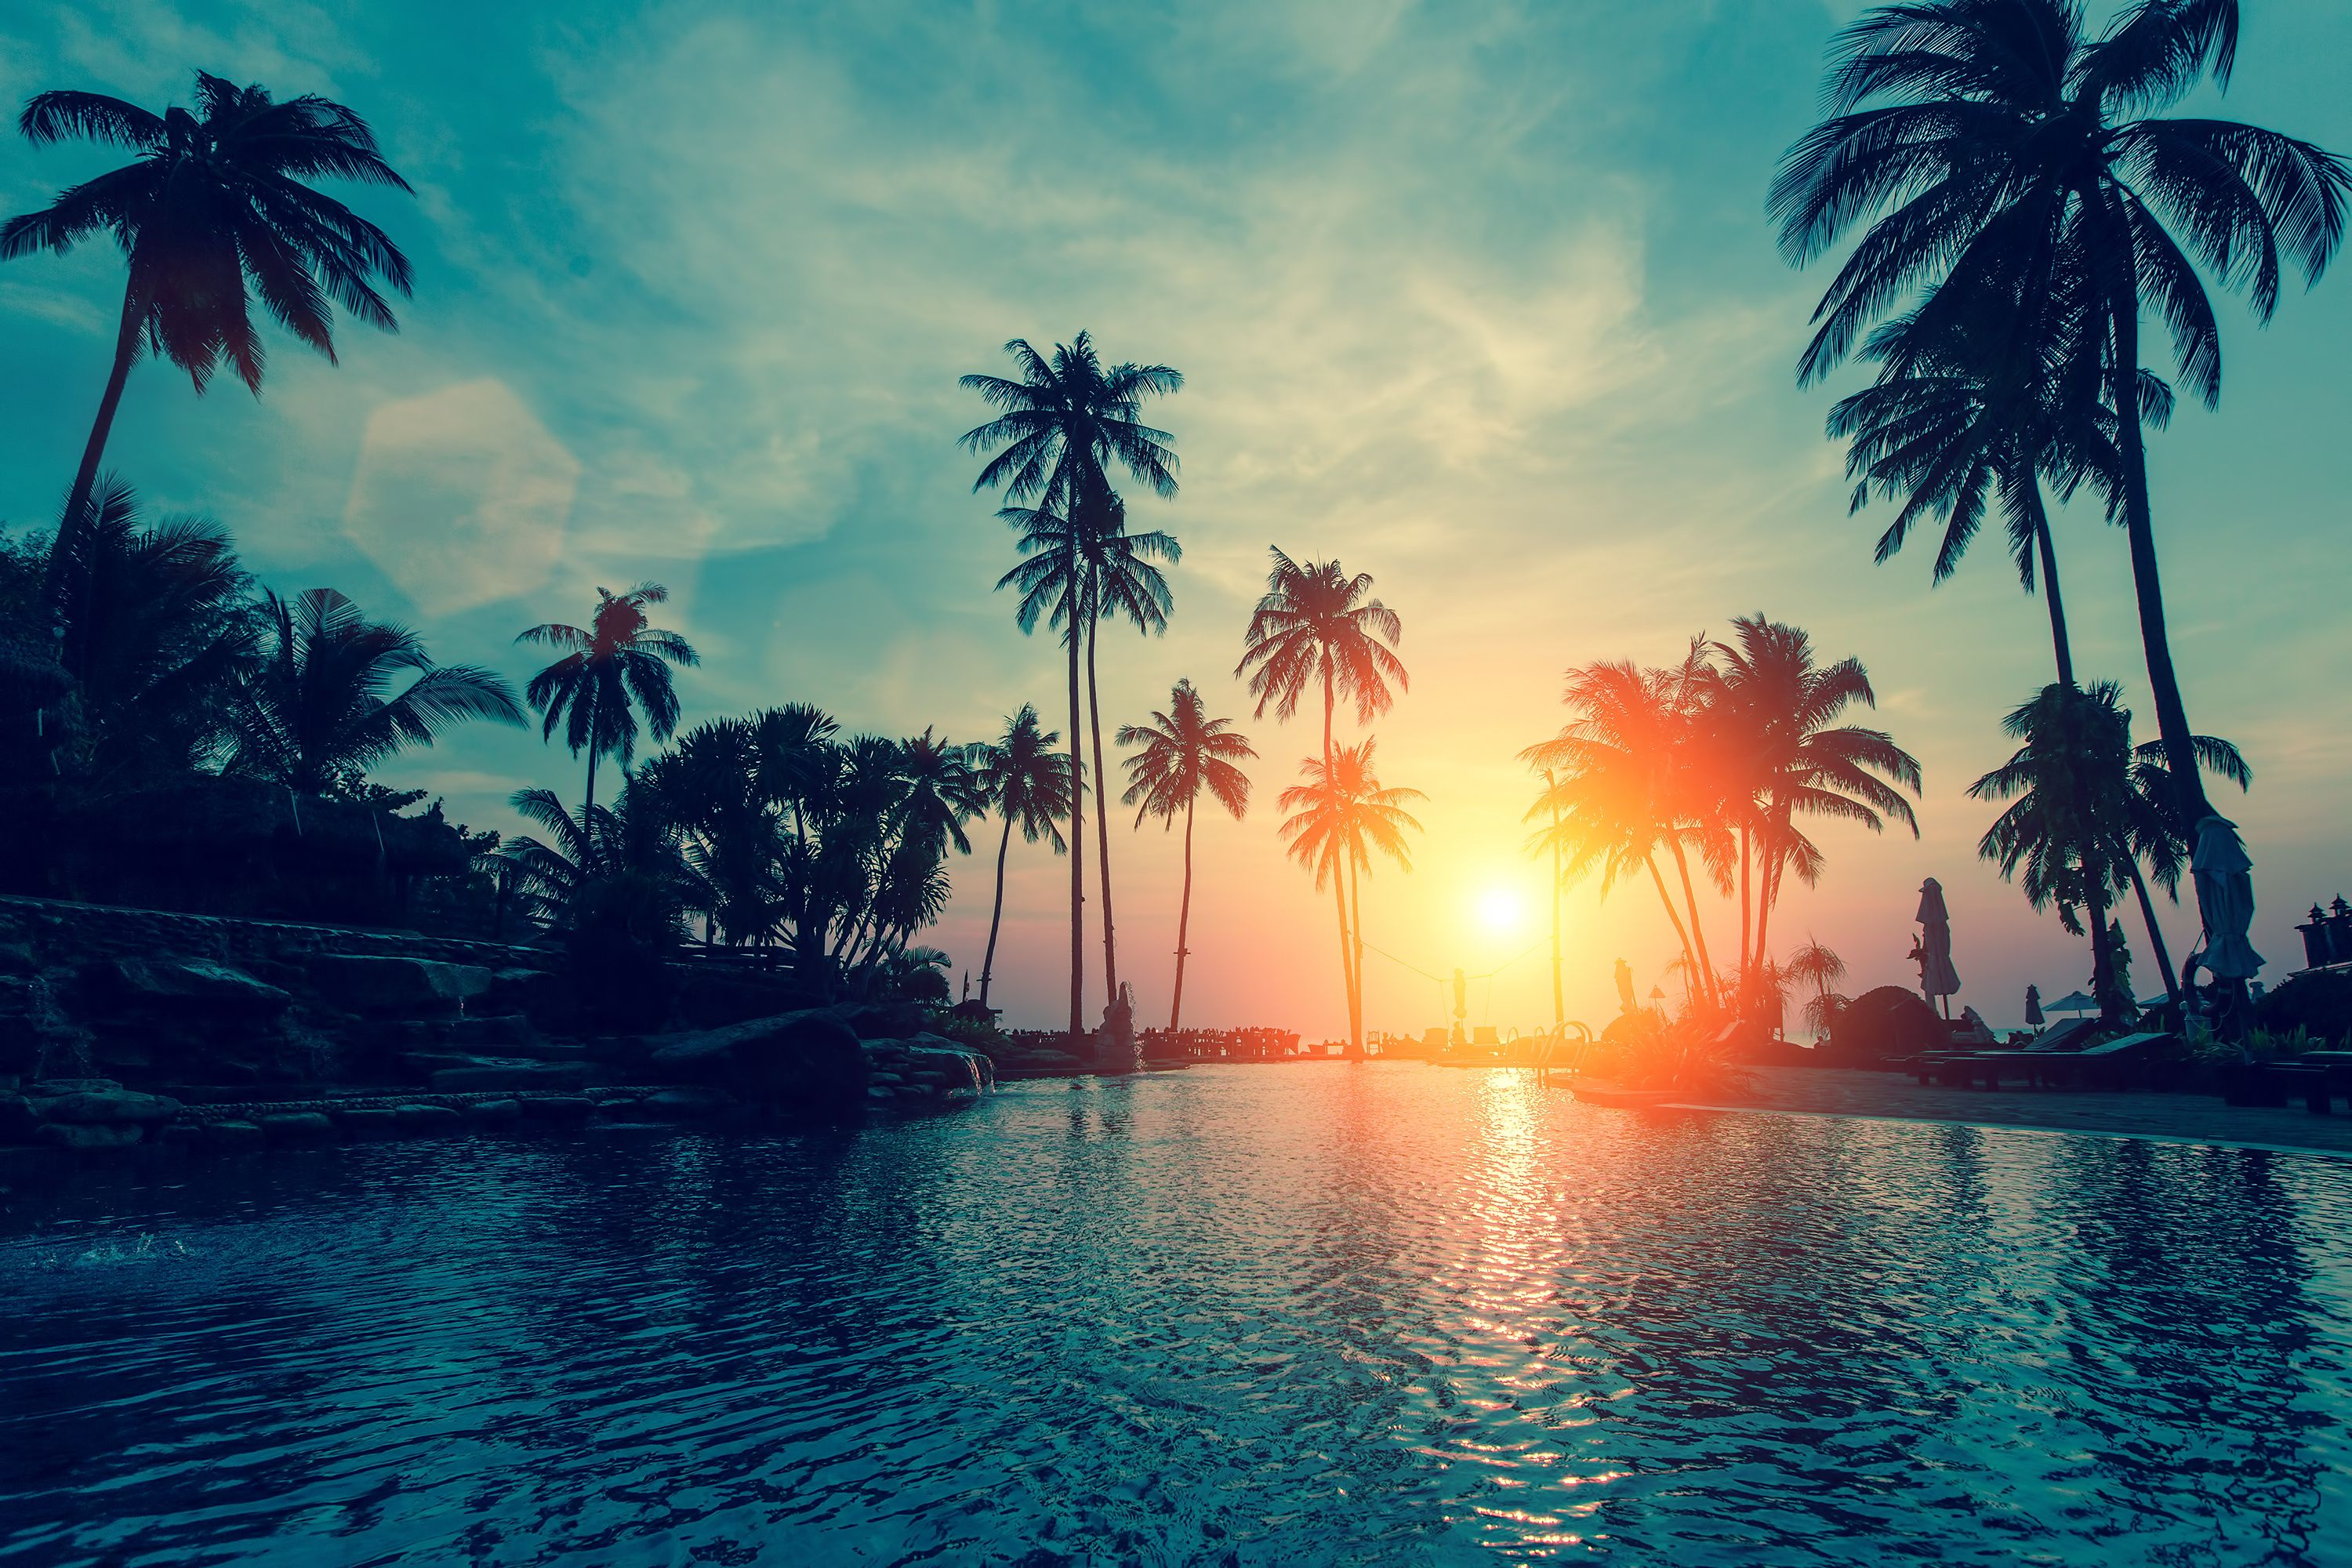 Pin By Jane Danielle On Insta Inspo Palm Trees Wallpaper Tree Hd Wallpaper Sunset Wallpaper